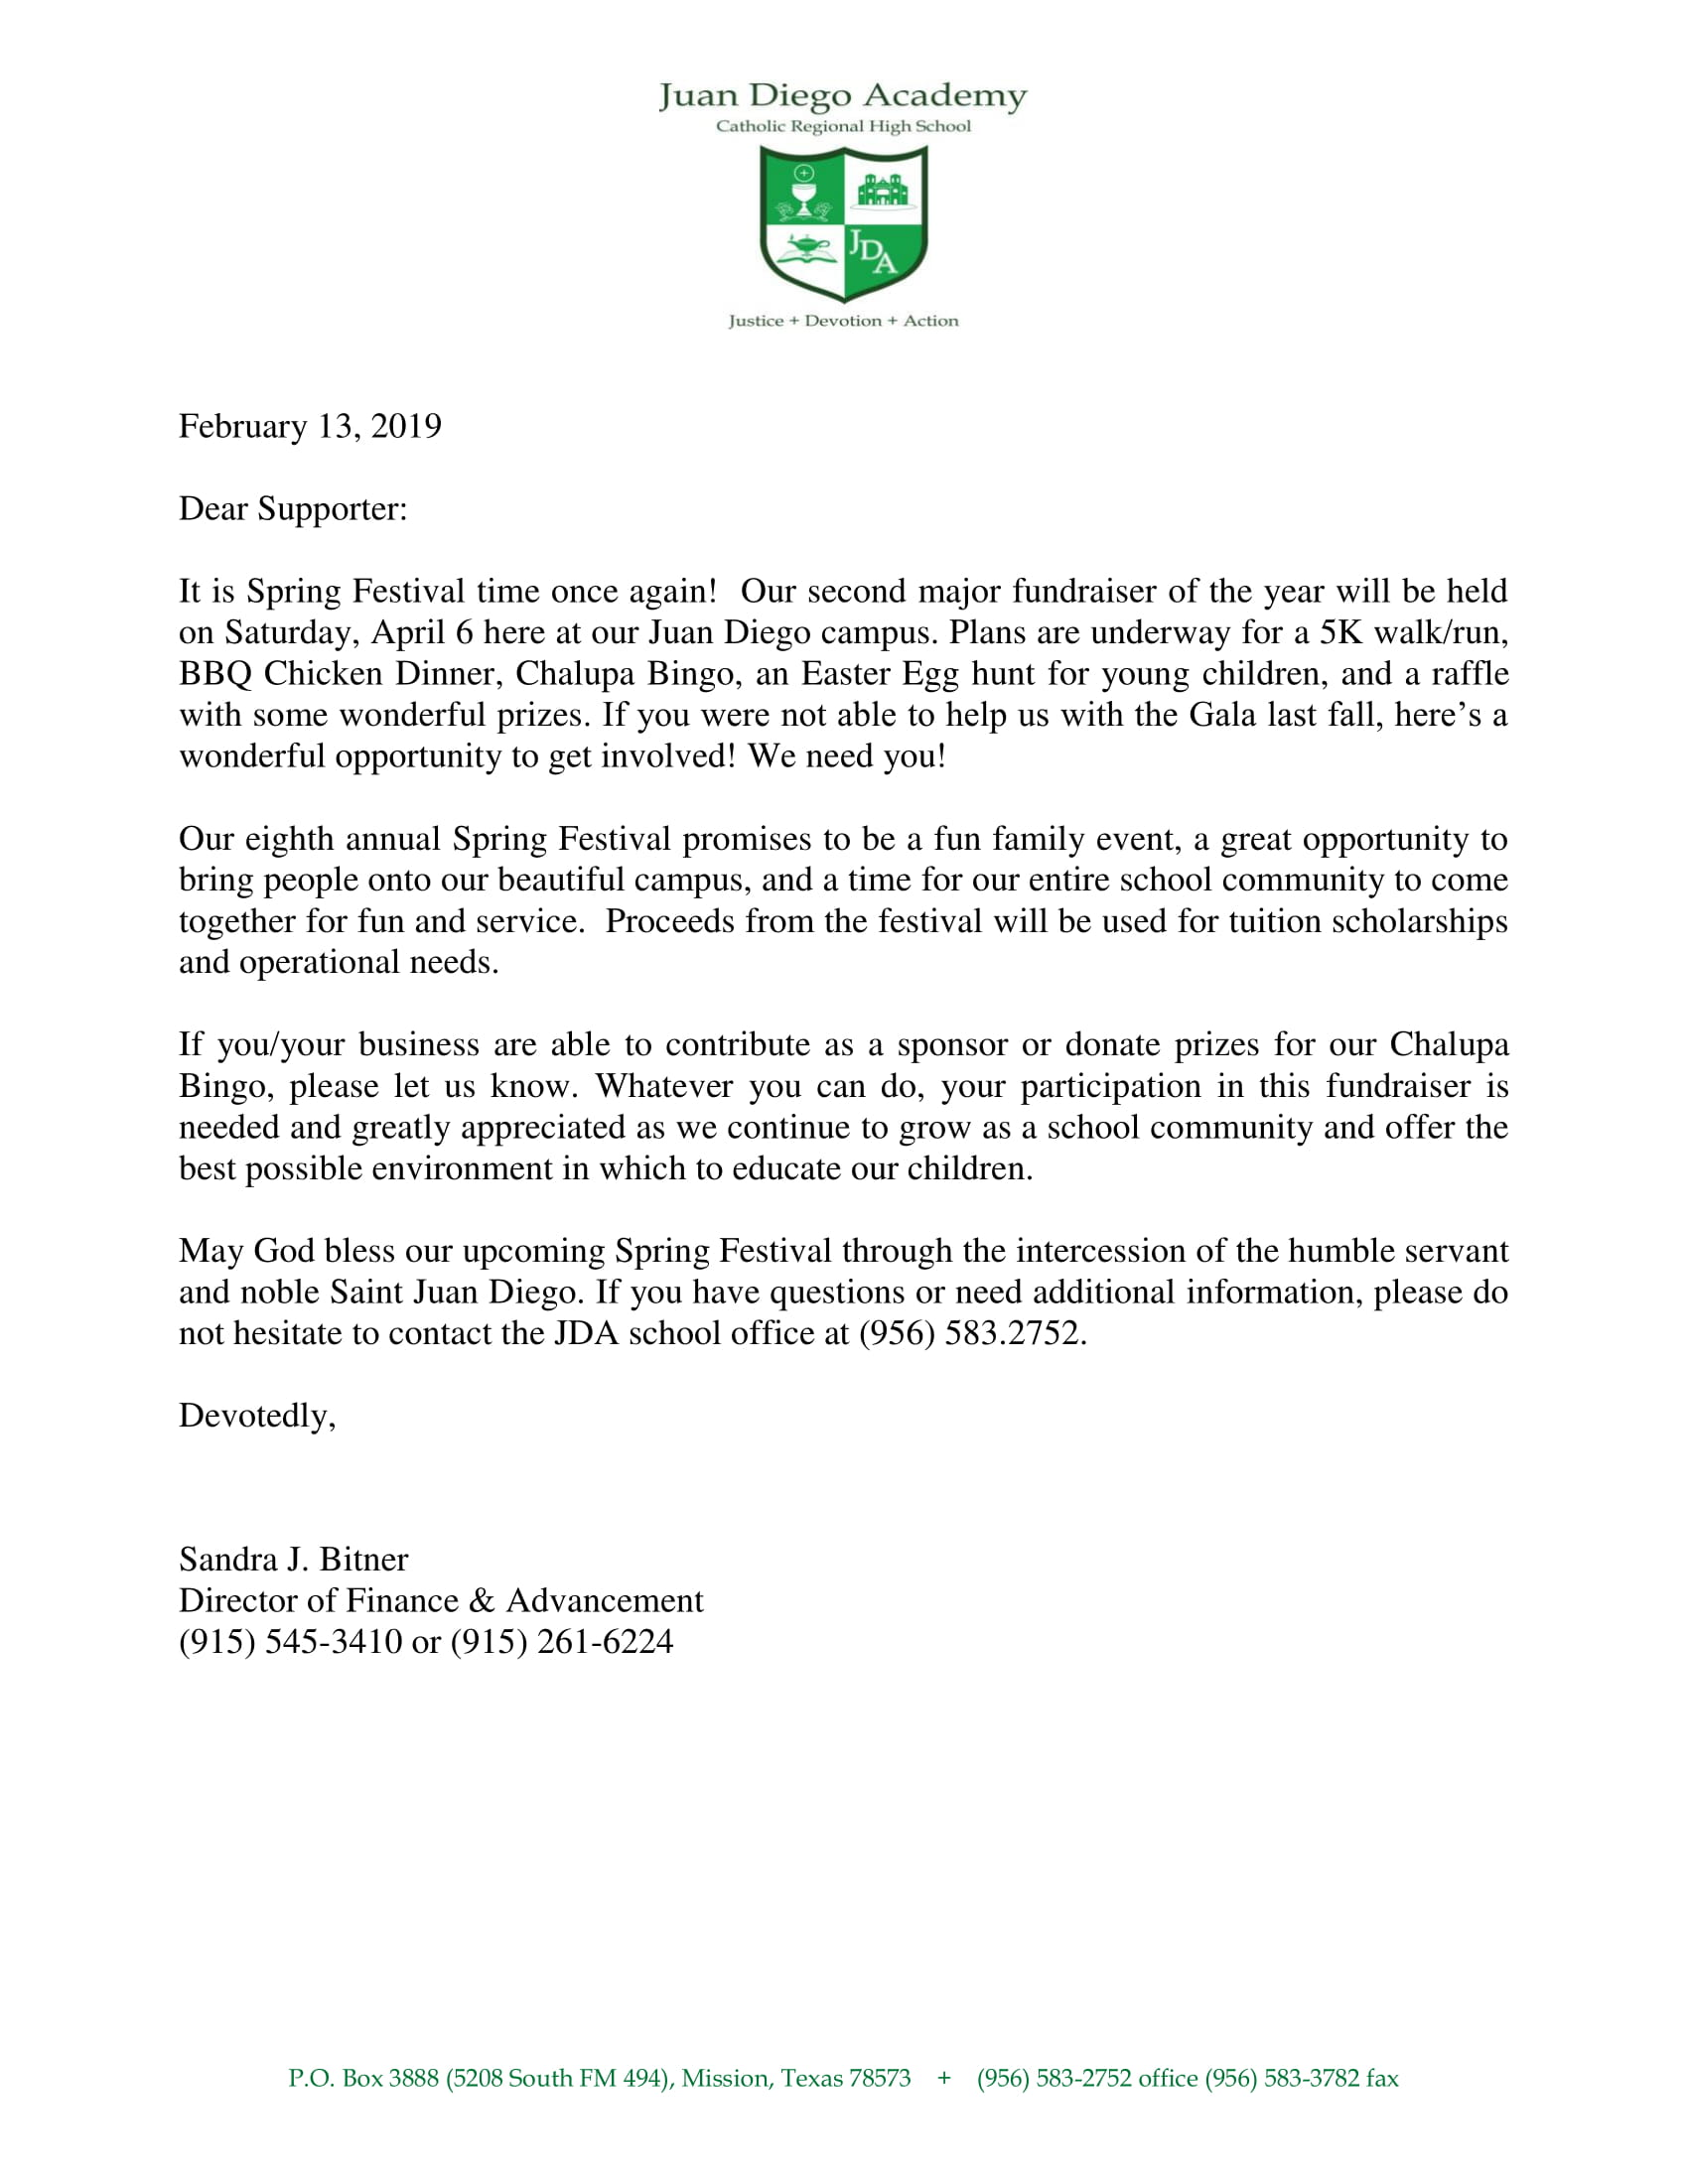 SF Supporter Letter 2019